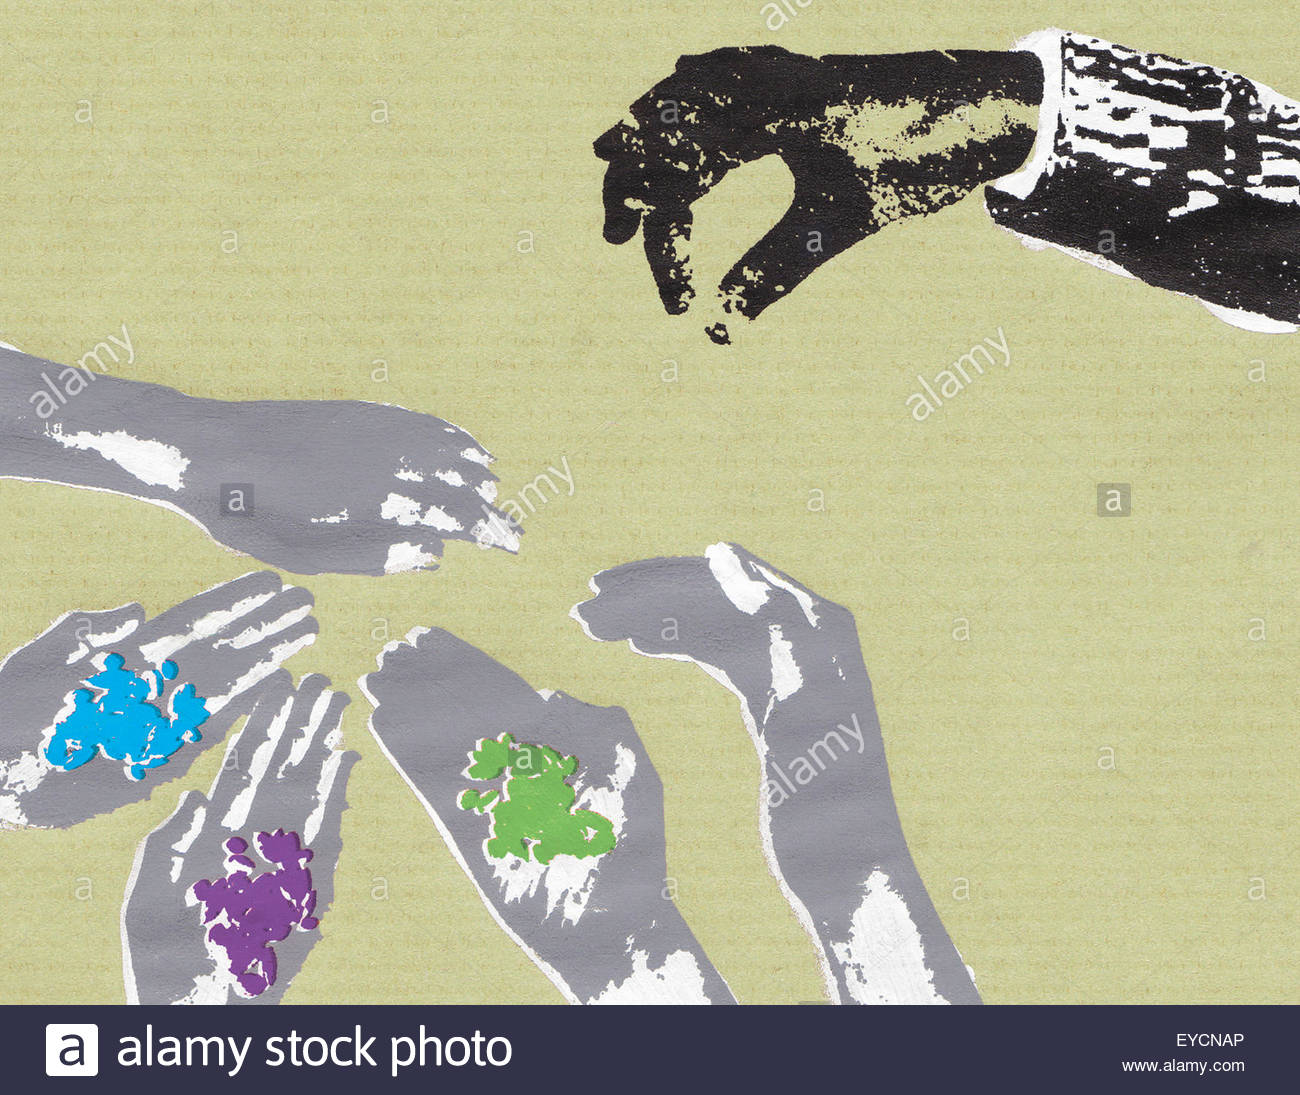 Businessman giving seeds to outstretched hands - Stock Image